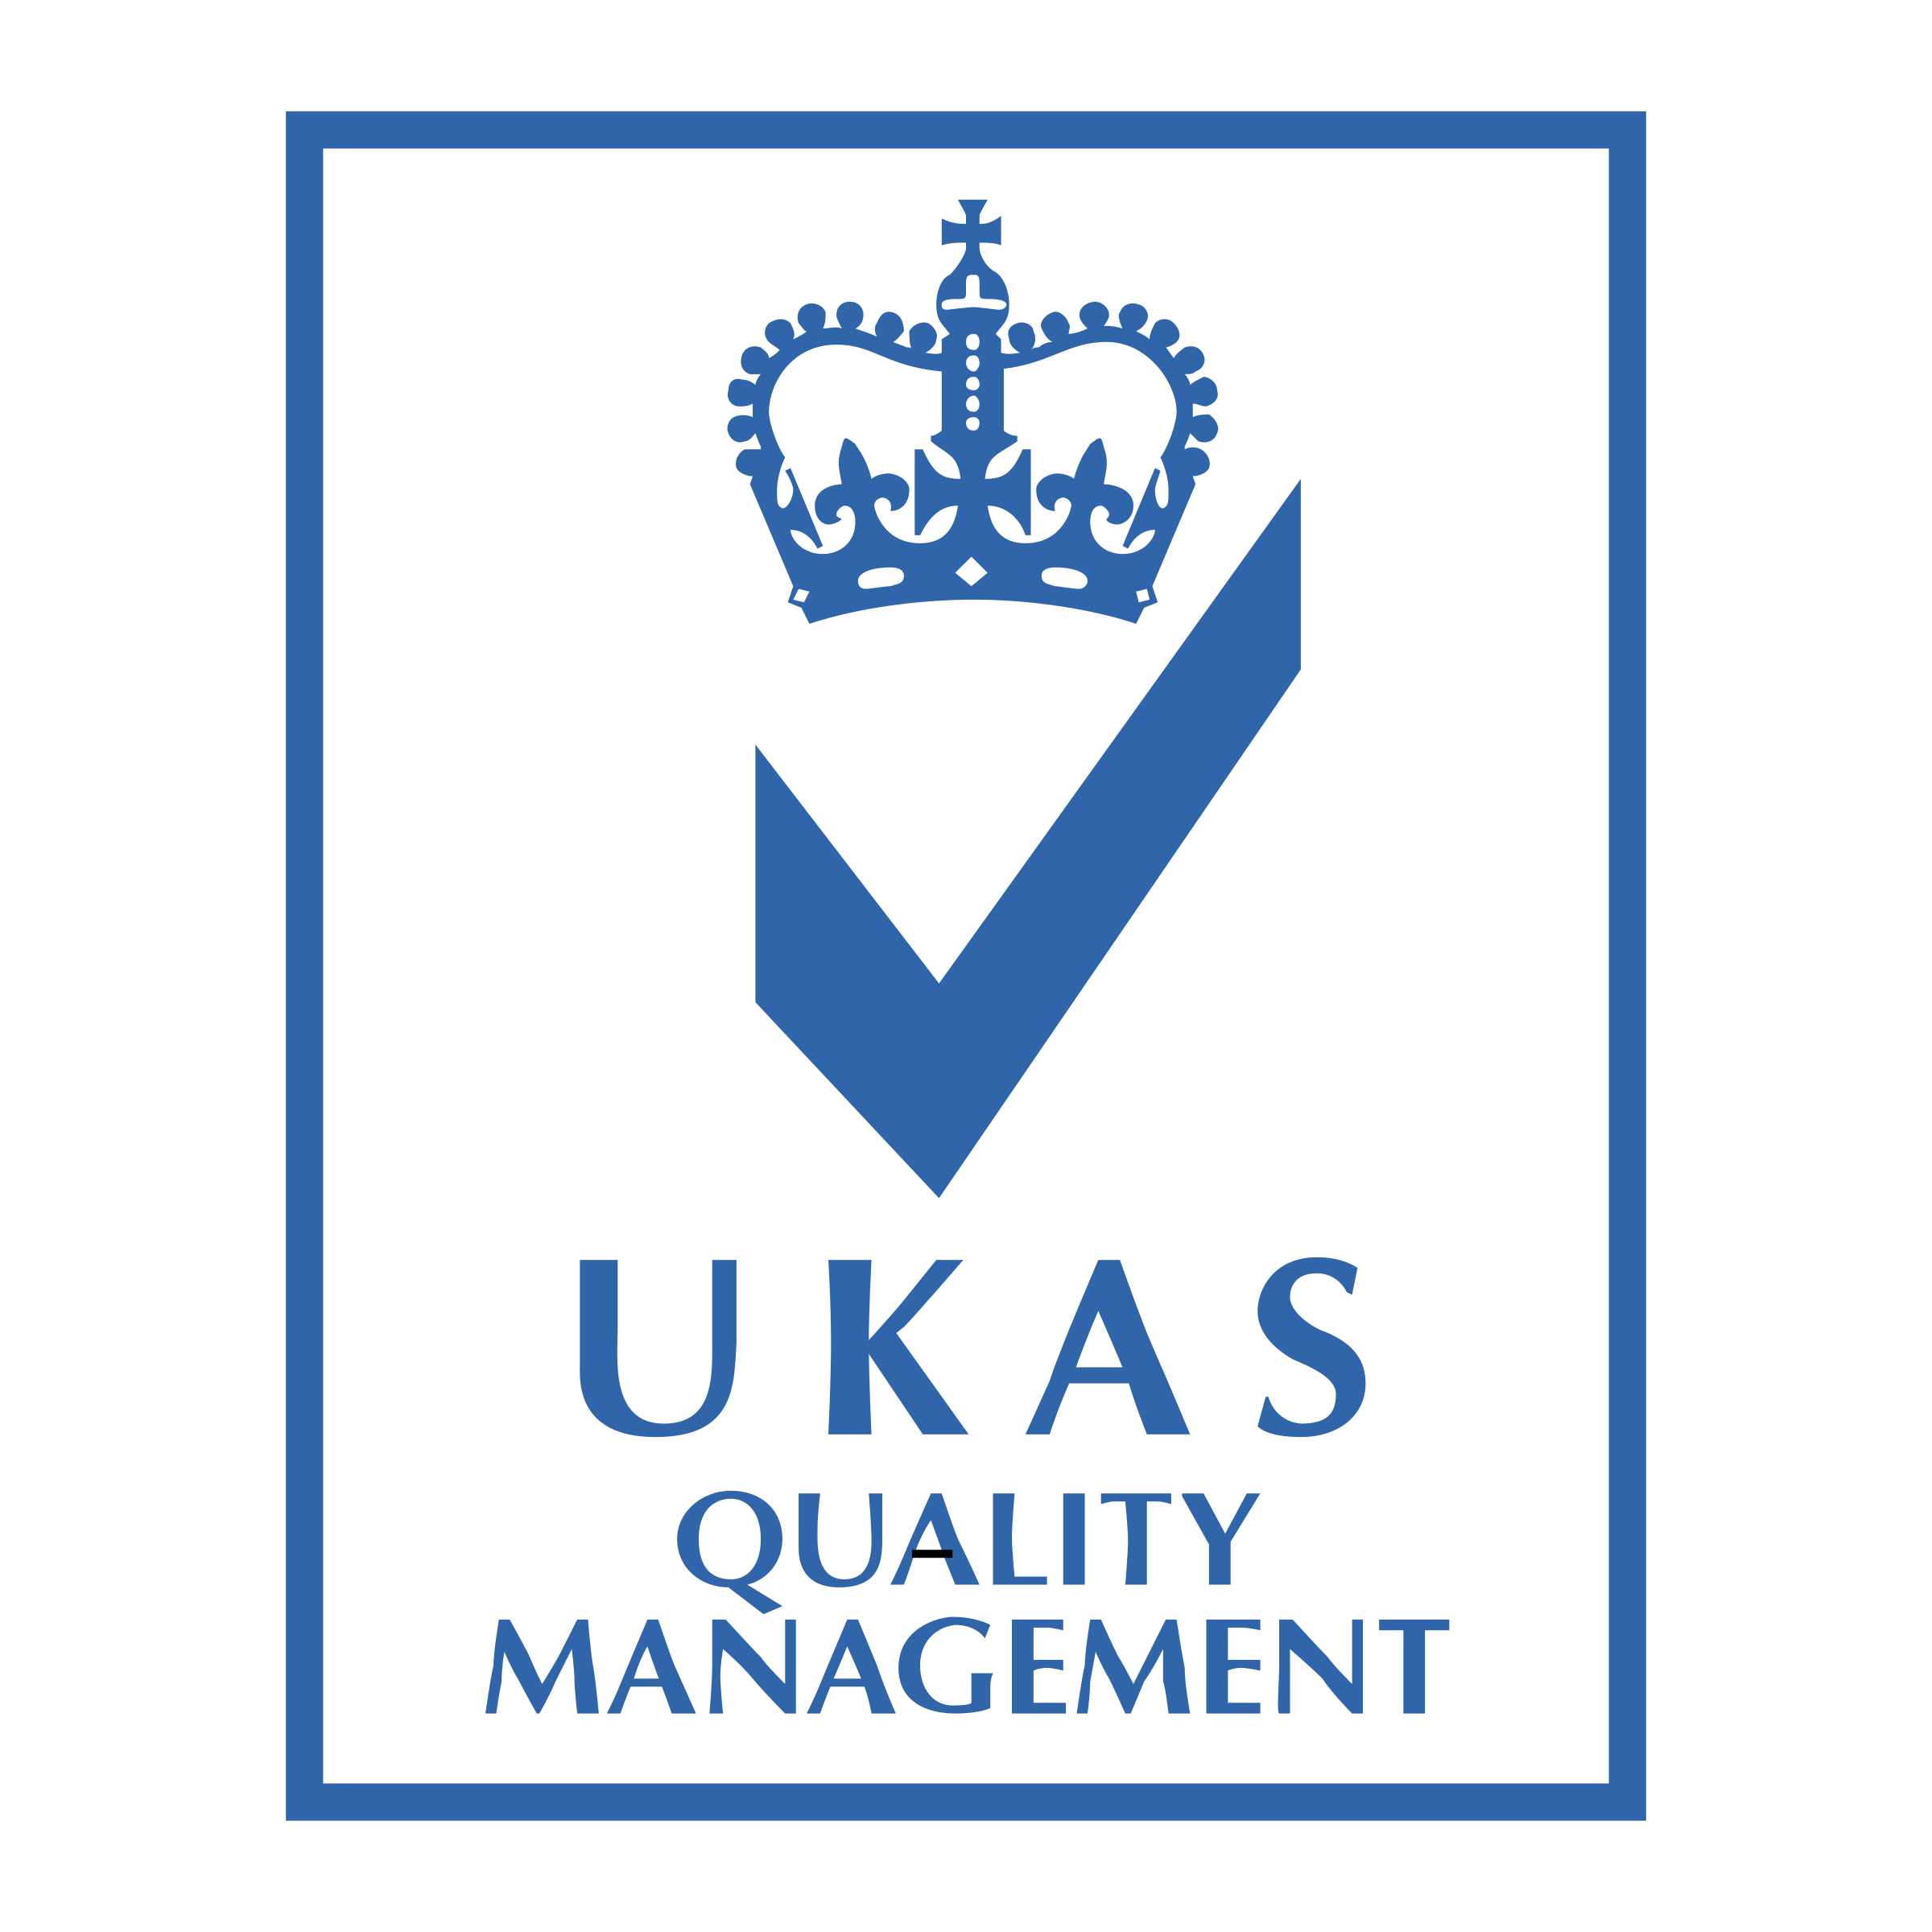 Ukas management logo png. Vector quality picture